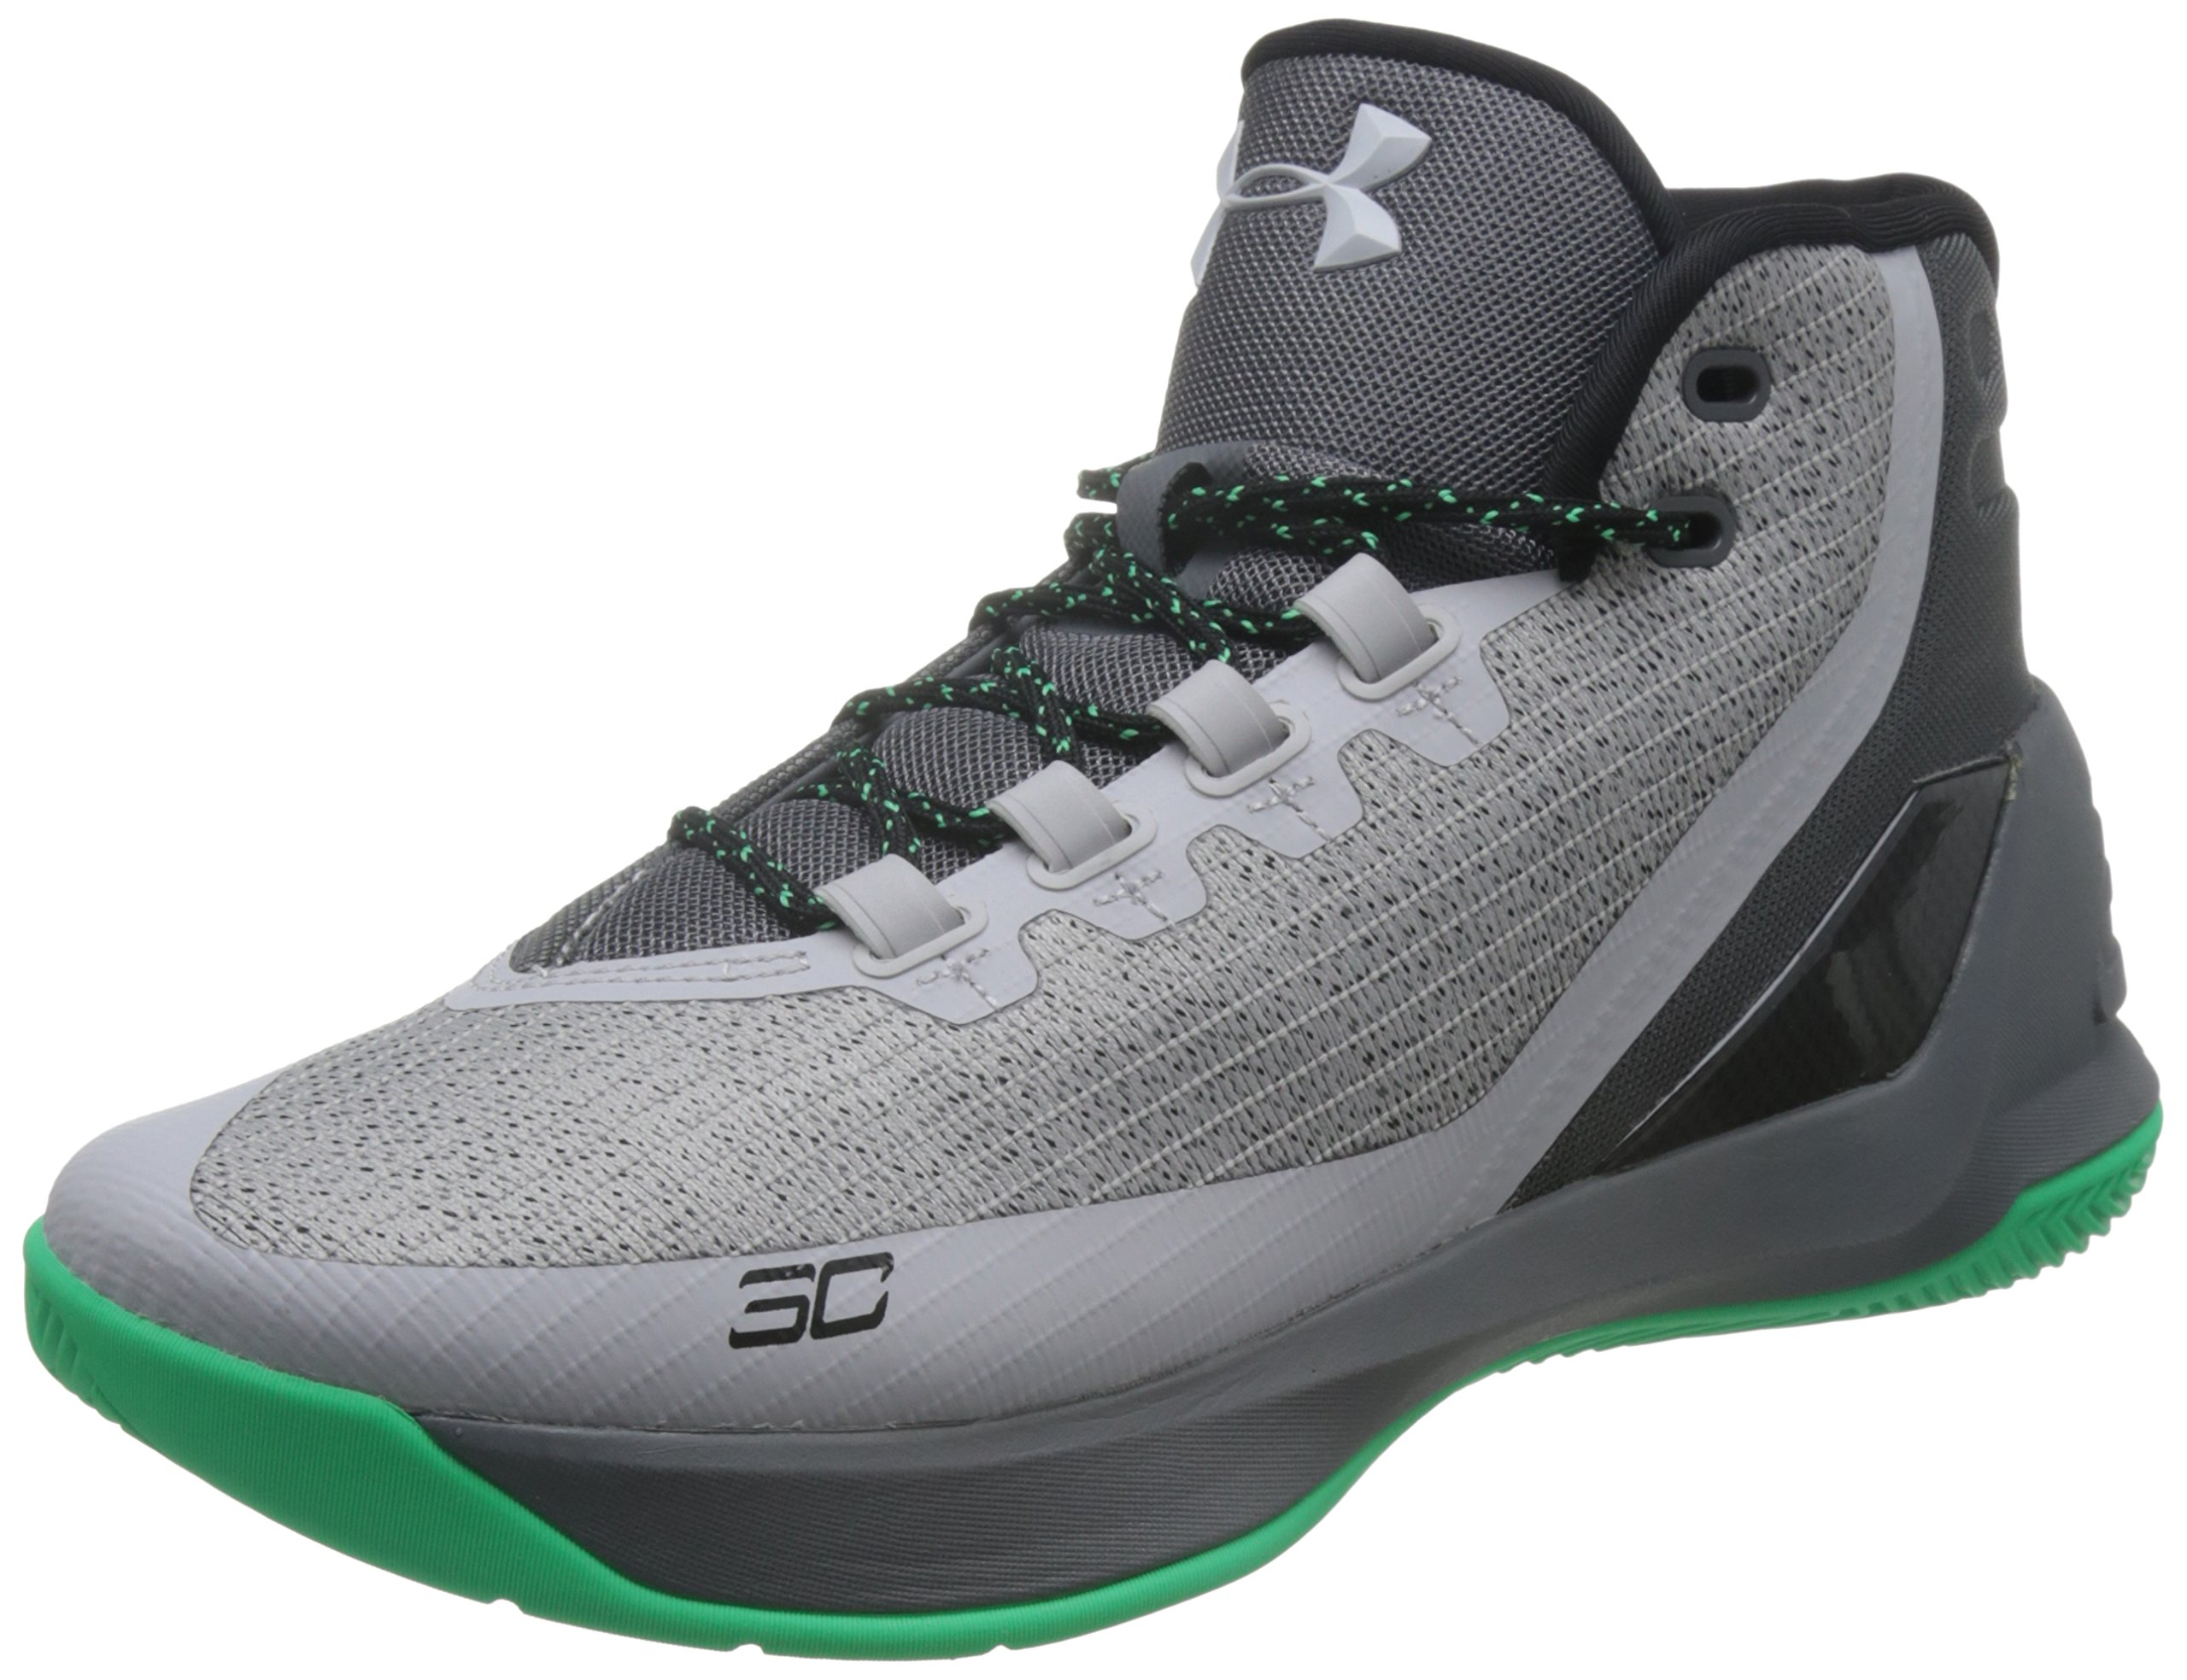 Under Armour Mens Curry 3 Basketball Shoe (9) by Under Armour